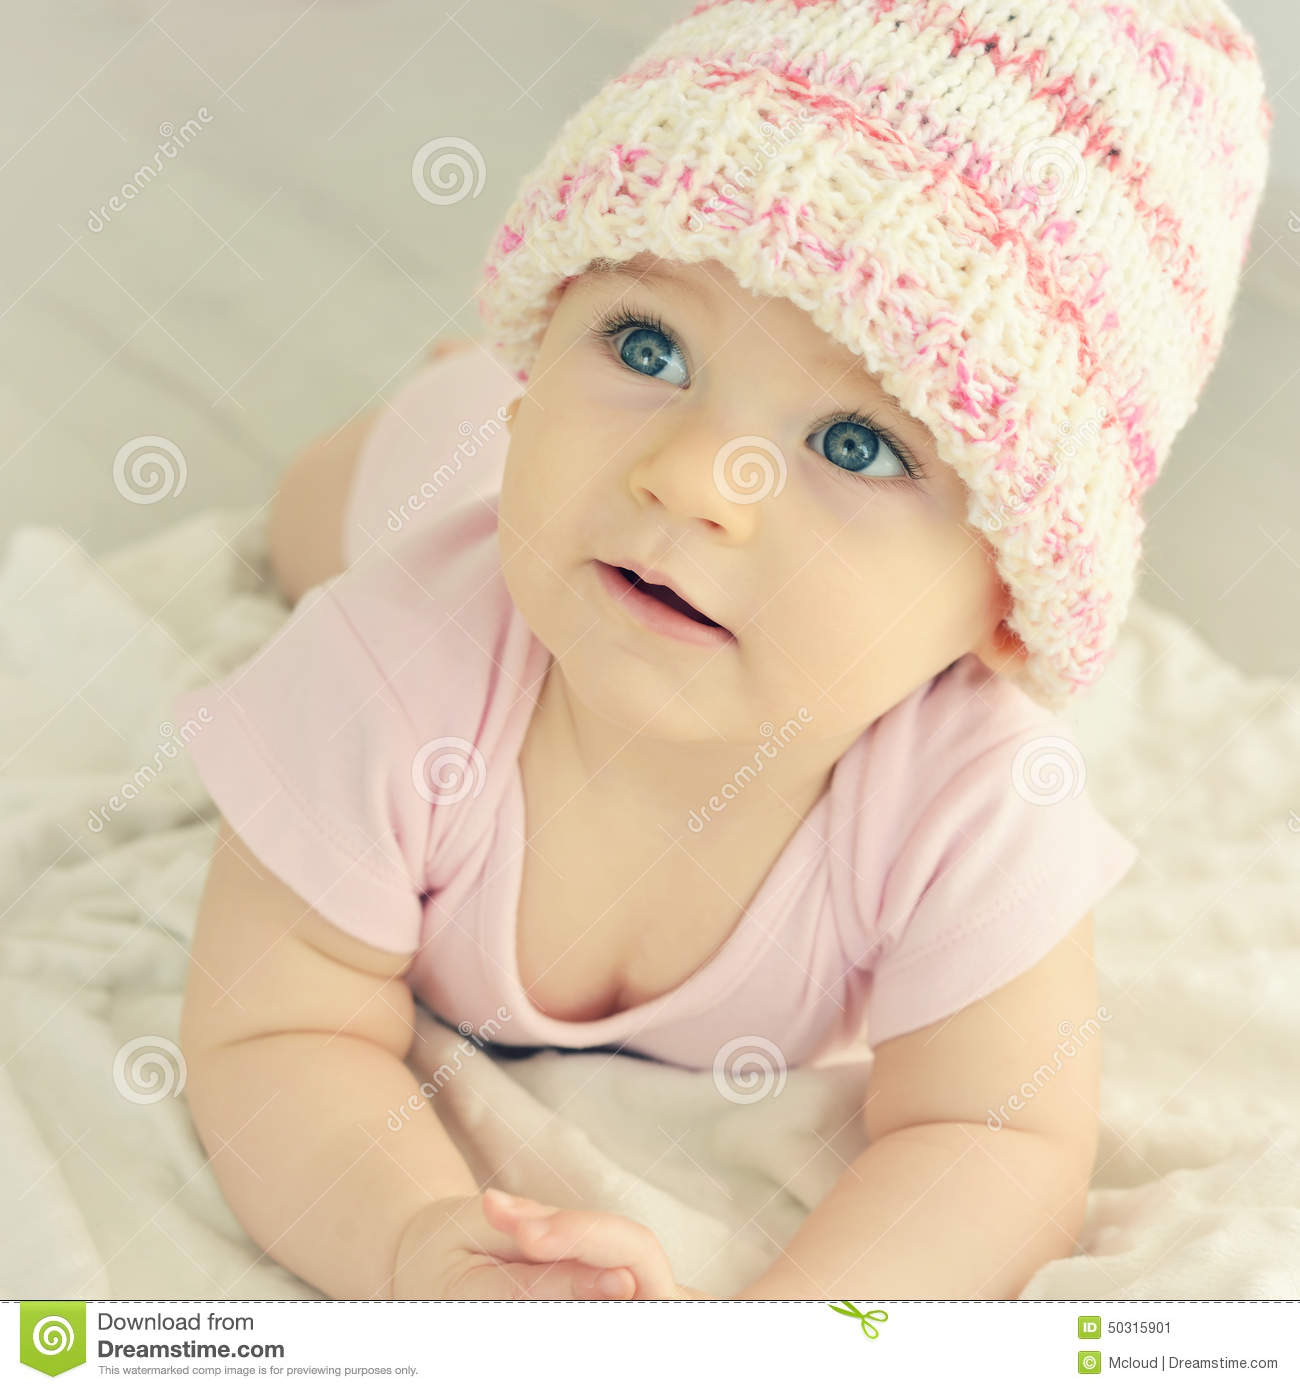 Newborn Baby Girl In Pink Knitted Hat. Stock Image - Image ...